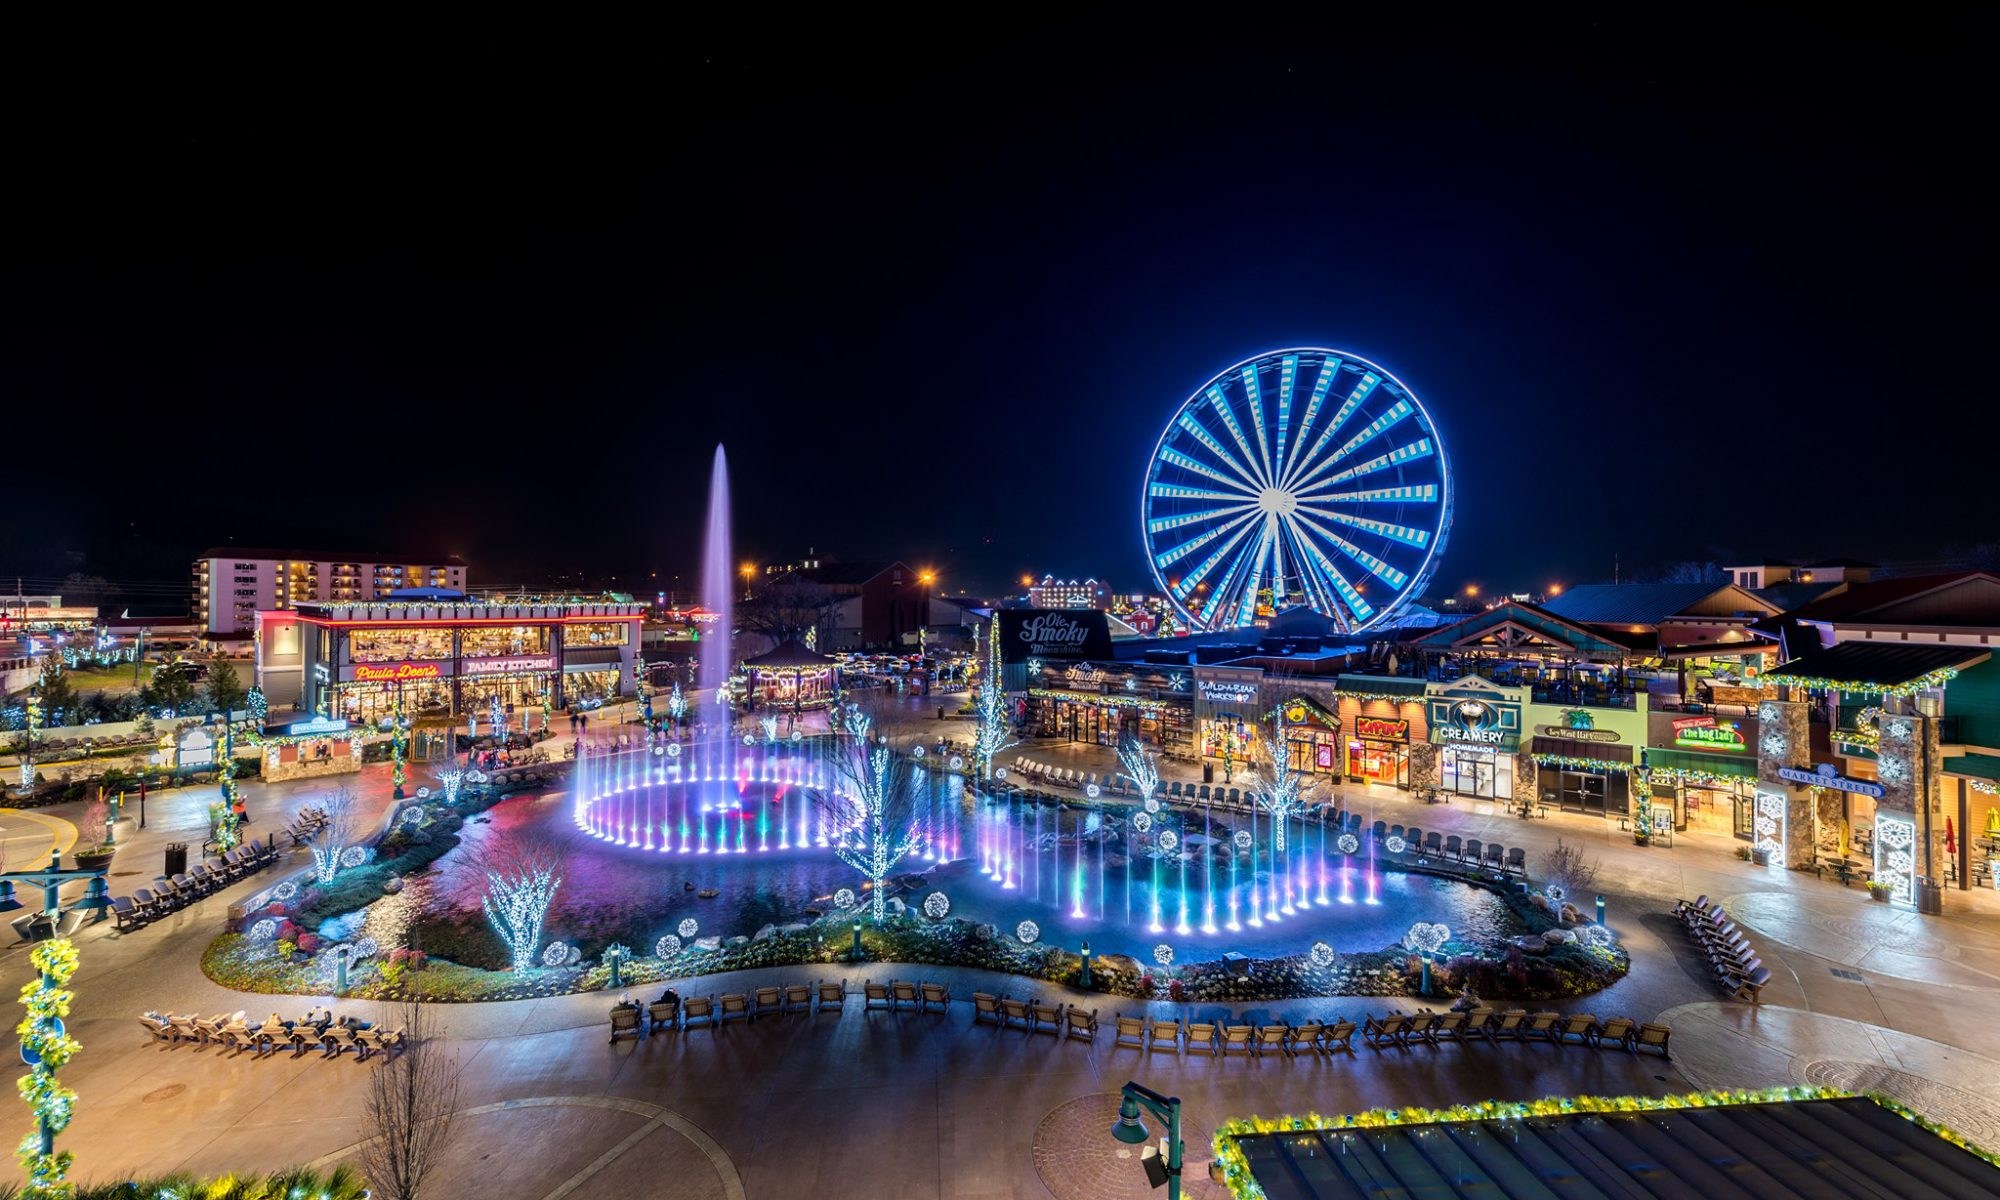 Really Fun Things to Do at Night in Pigeon Forge